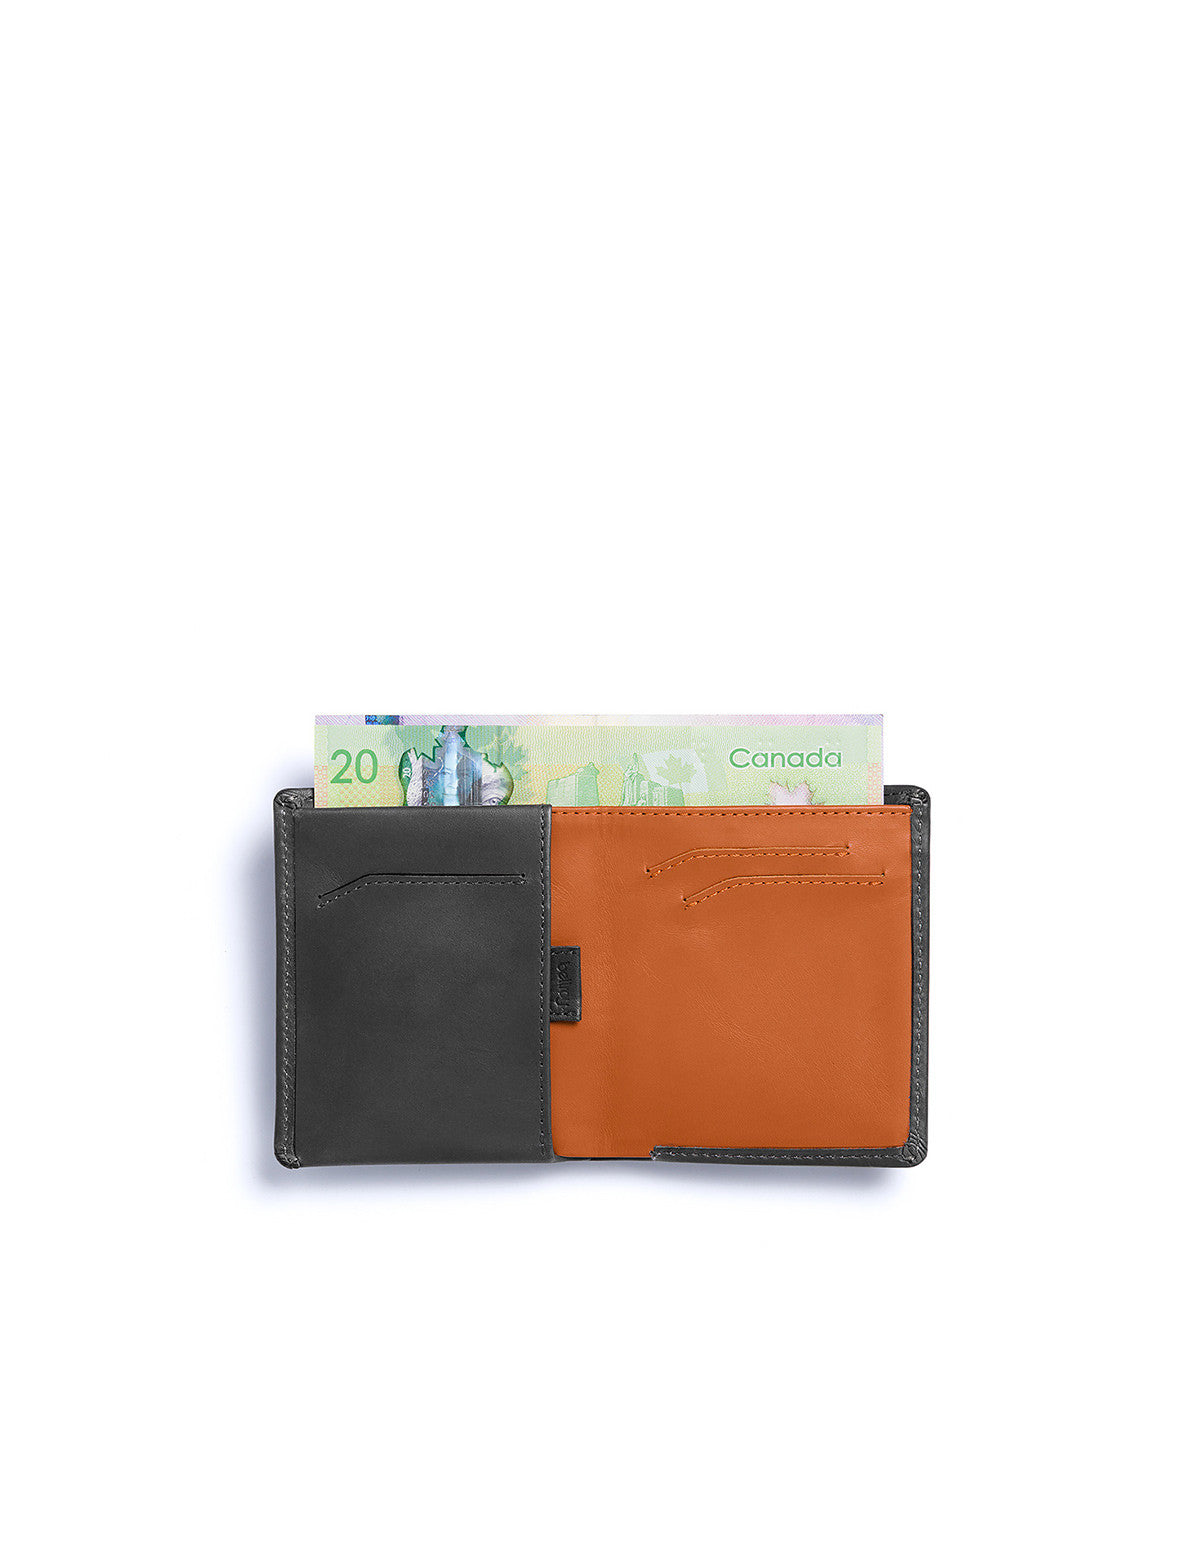 Bellroy Note Sleeve Wallet Charcoal - Still Life - 3